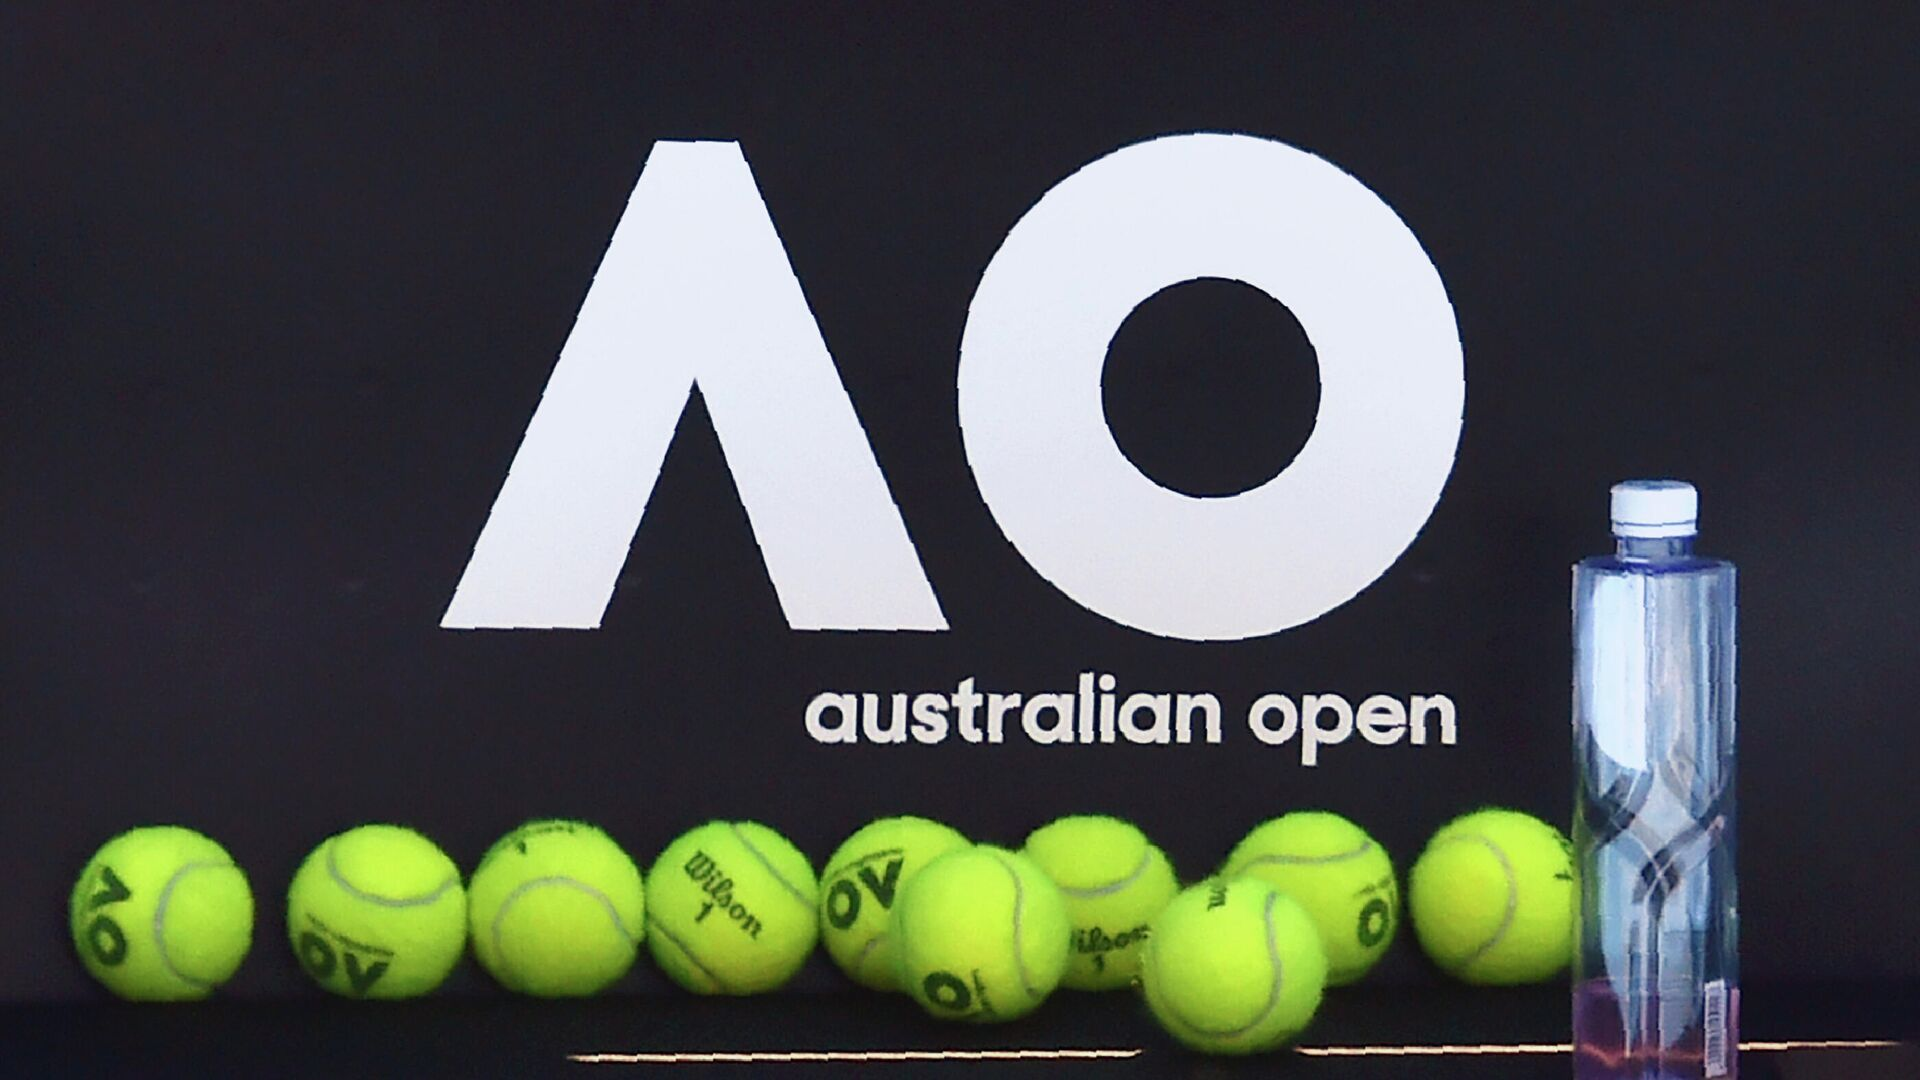 Official tennis balls for the Australian Open are seen on a chair during a practice session ahead of the Australian Open tennis tournament in Melbourne on January 14, 2018. (Photo by PAUL CROCK / AFP) / -- IMAGE RESTRICTED TO EDITORIAL USE - STRICTLY NO COMMERCIAL USE -- - РИА Новости, 1920, 19.01.2021